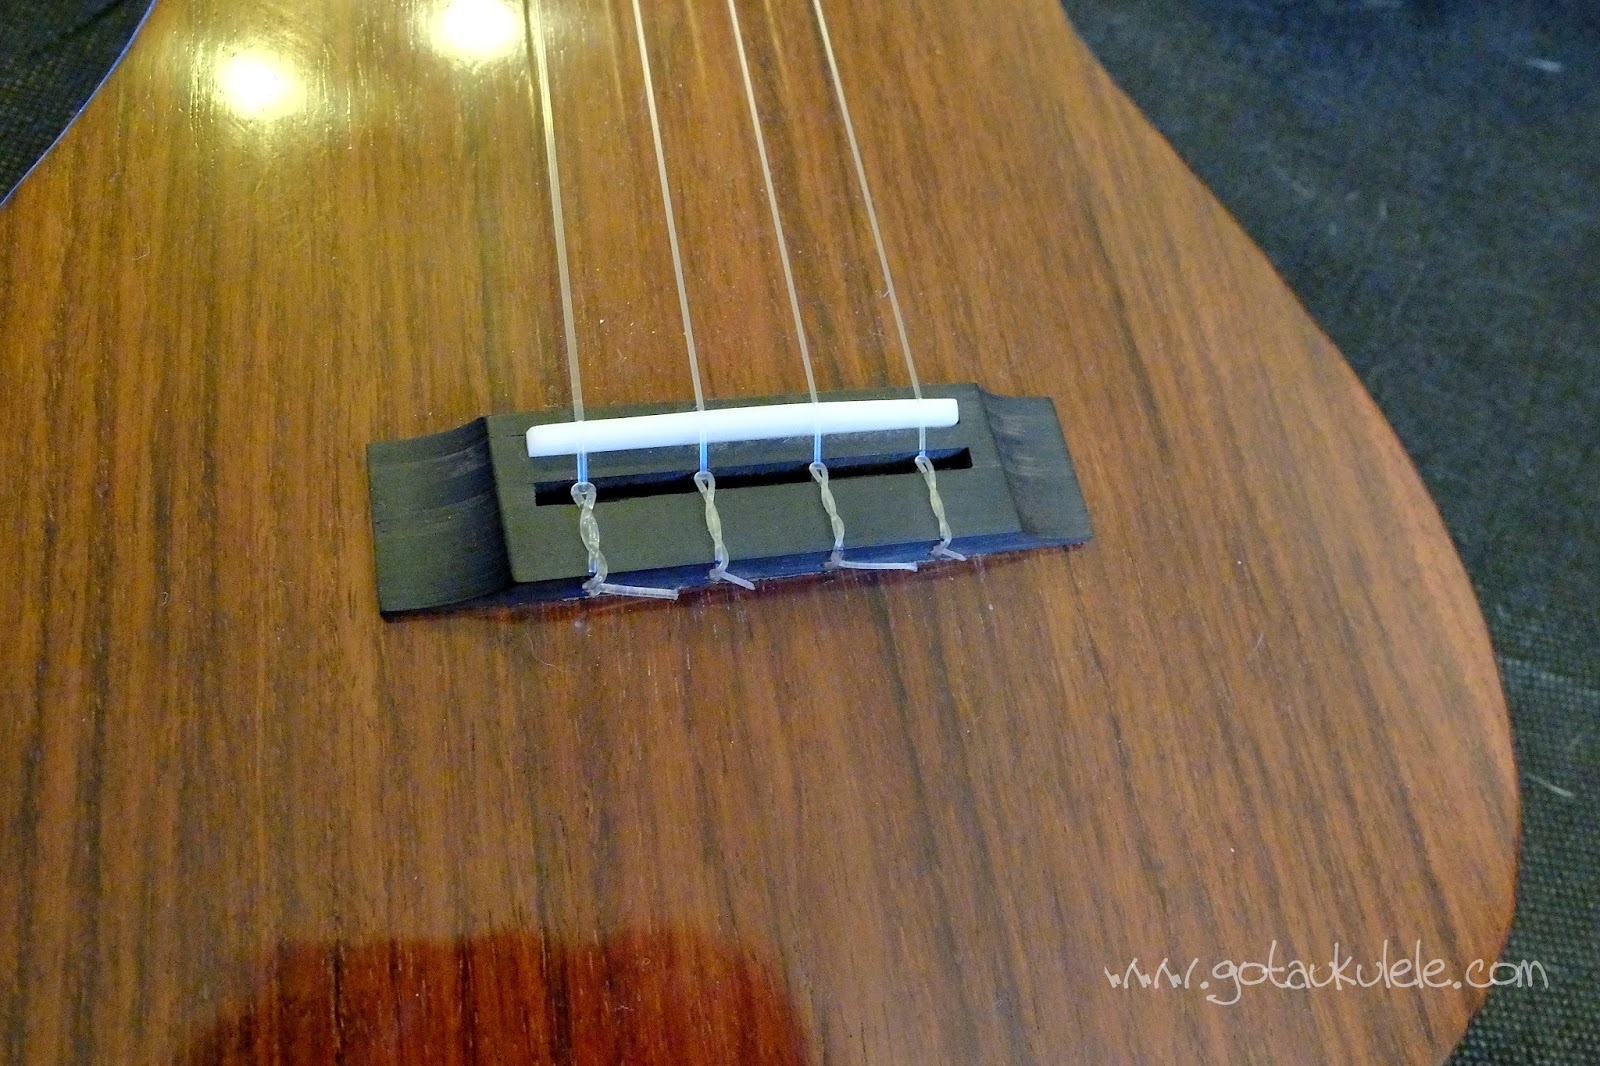 Tinguitar custom build solid electro tenor bridge